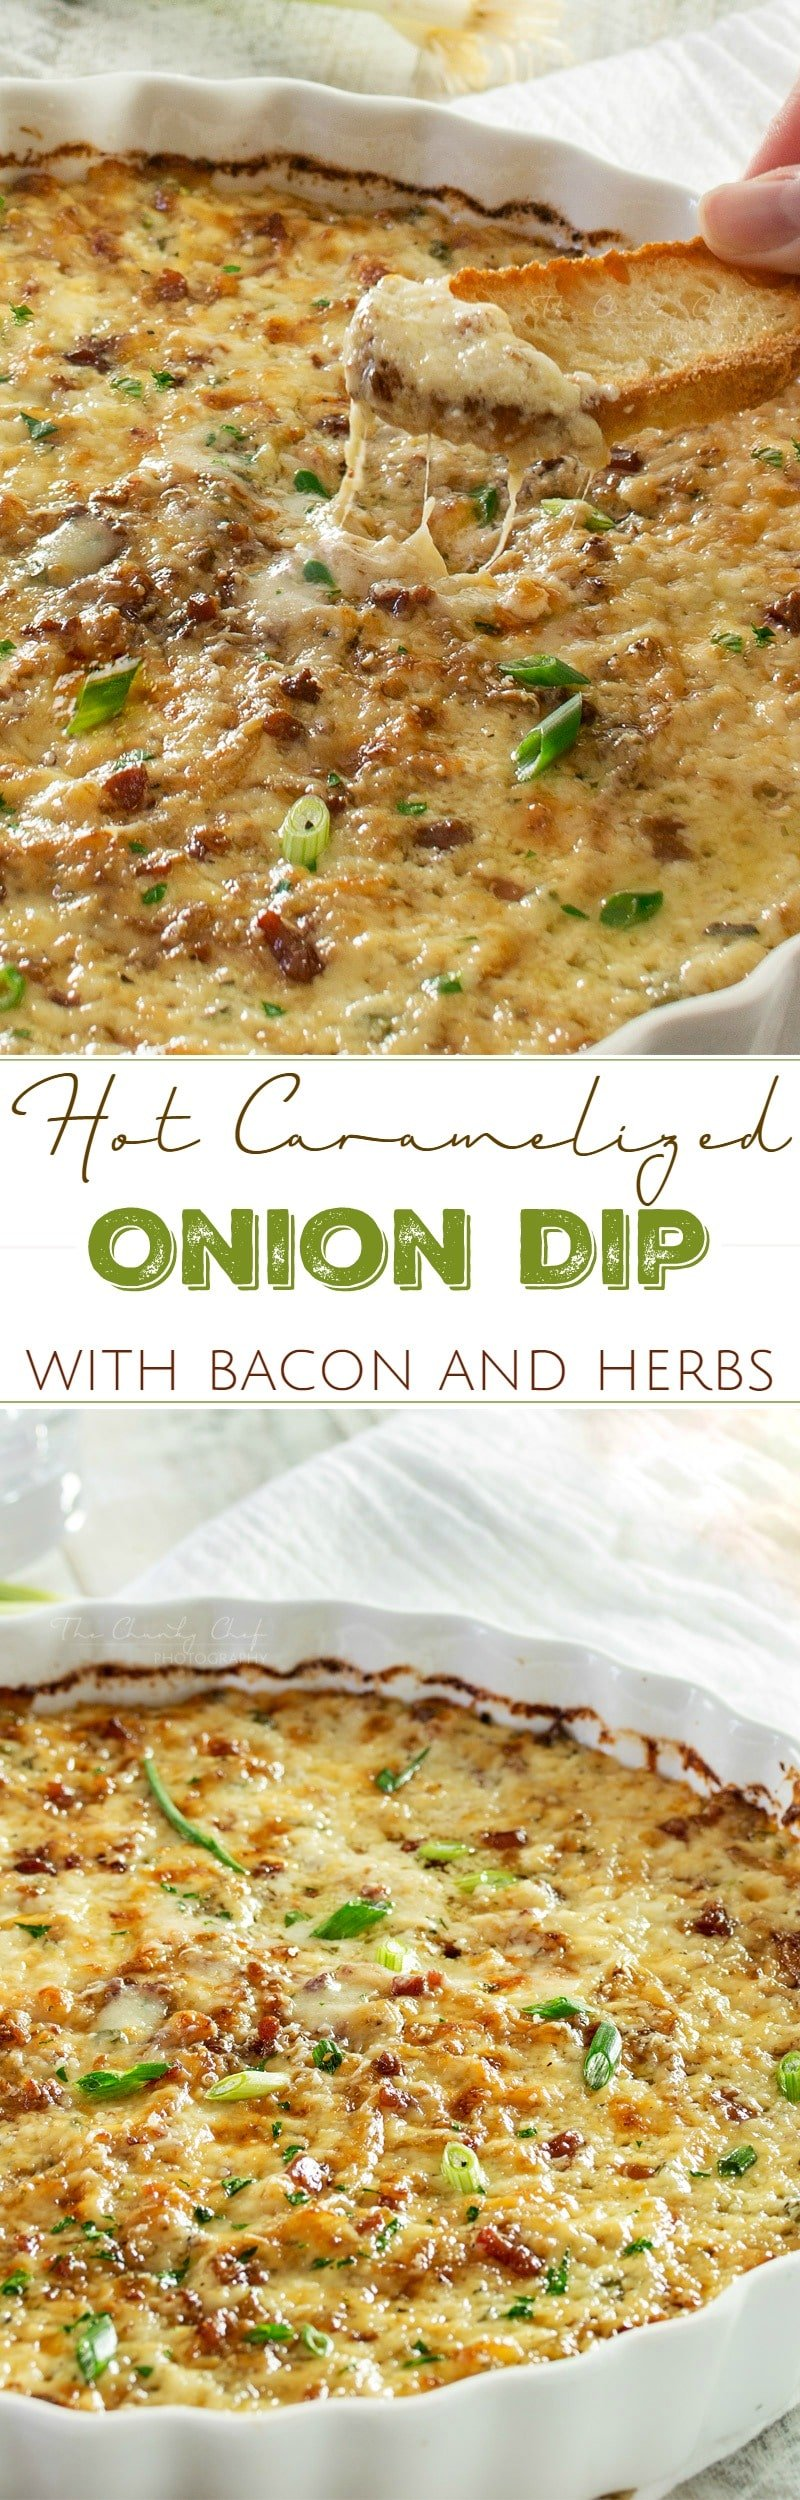 Caramelized Onion Dip | The ultimate party dip! This onion dip is made ...